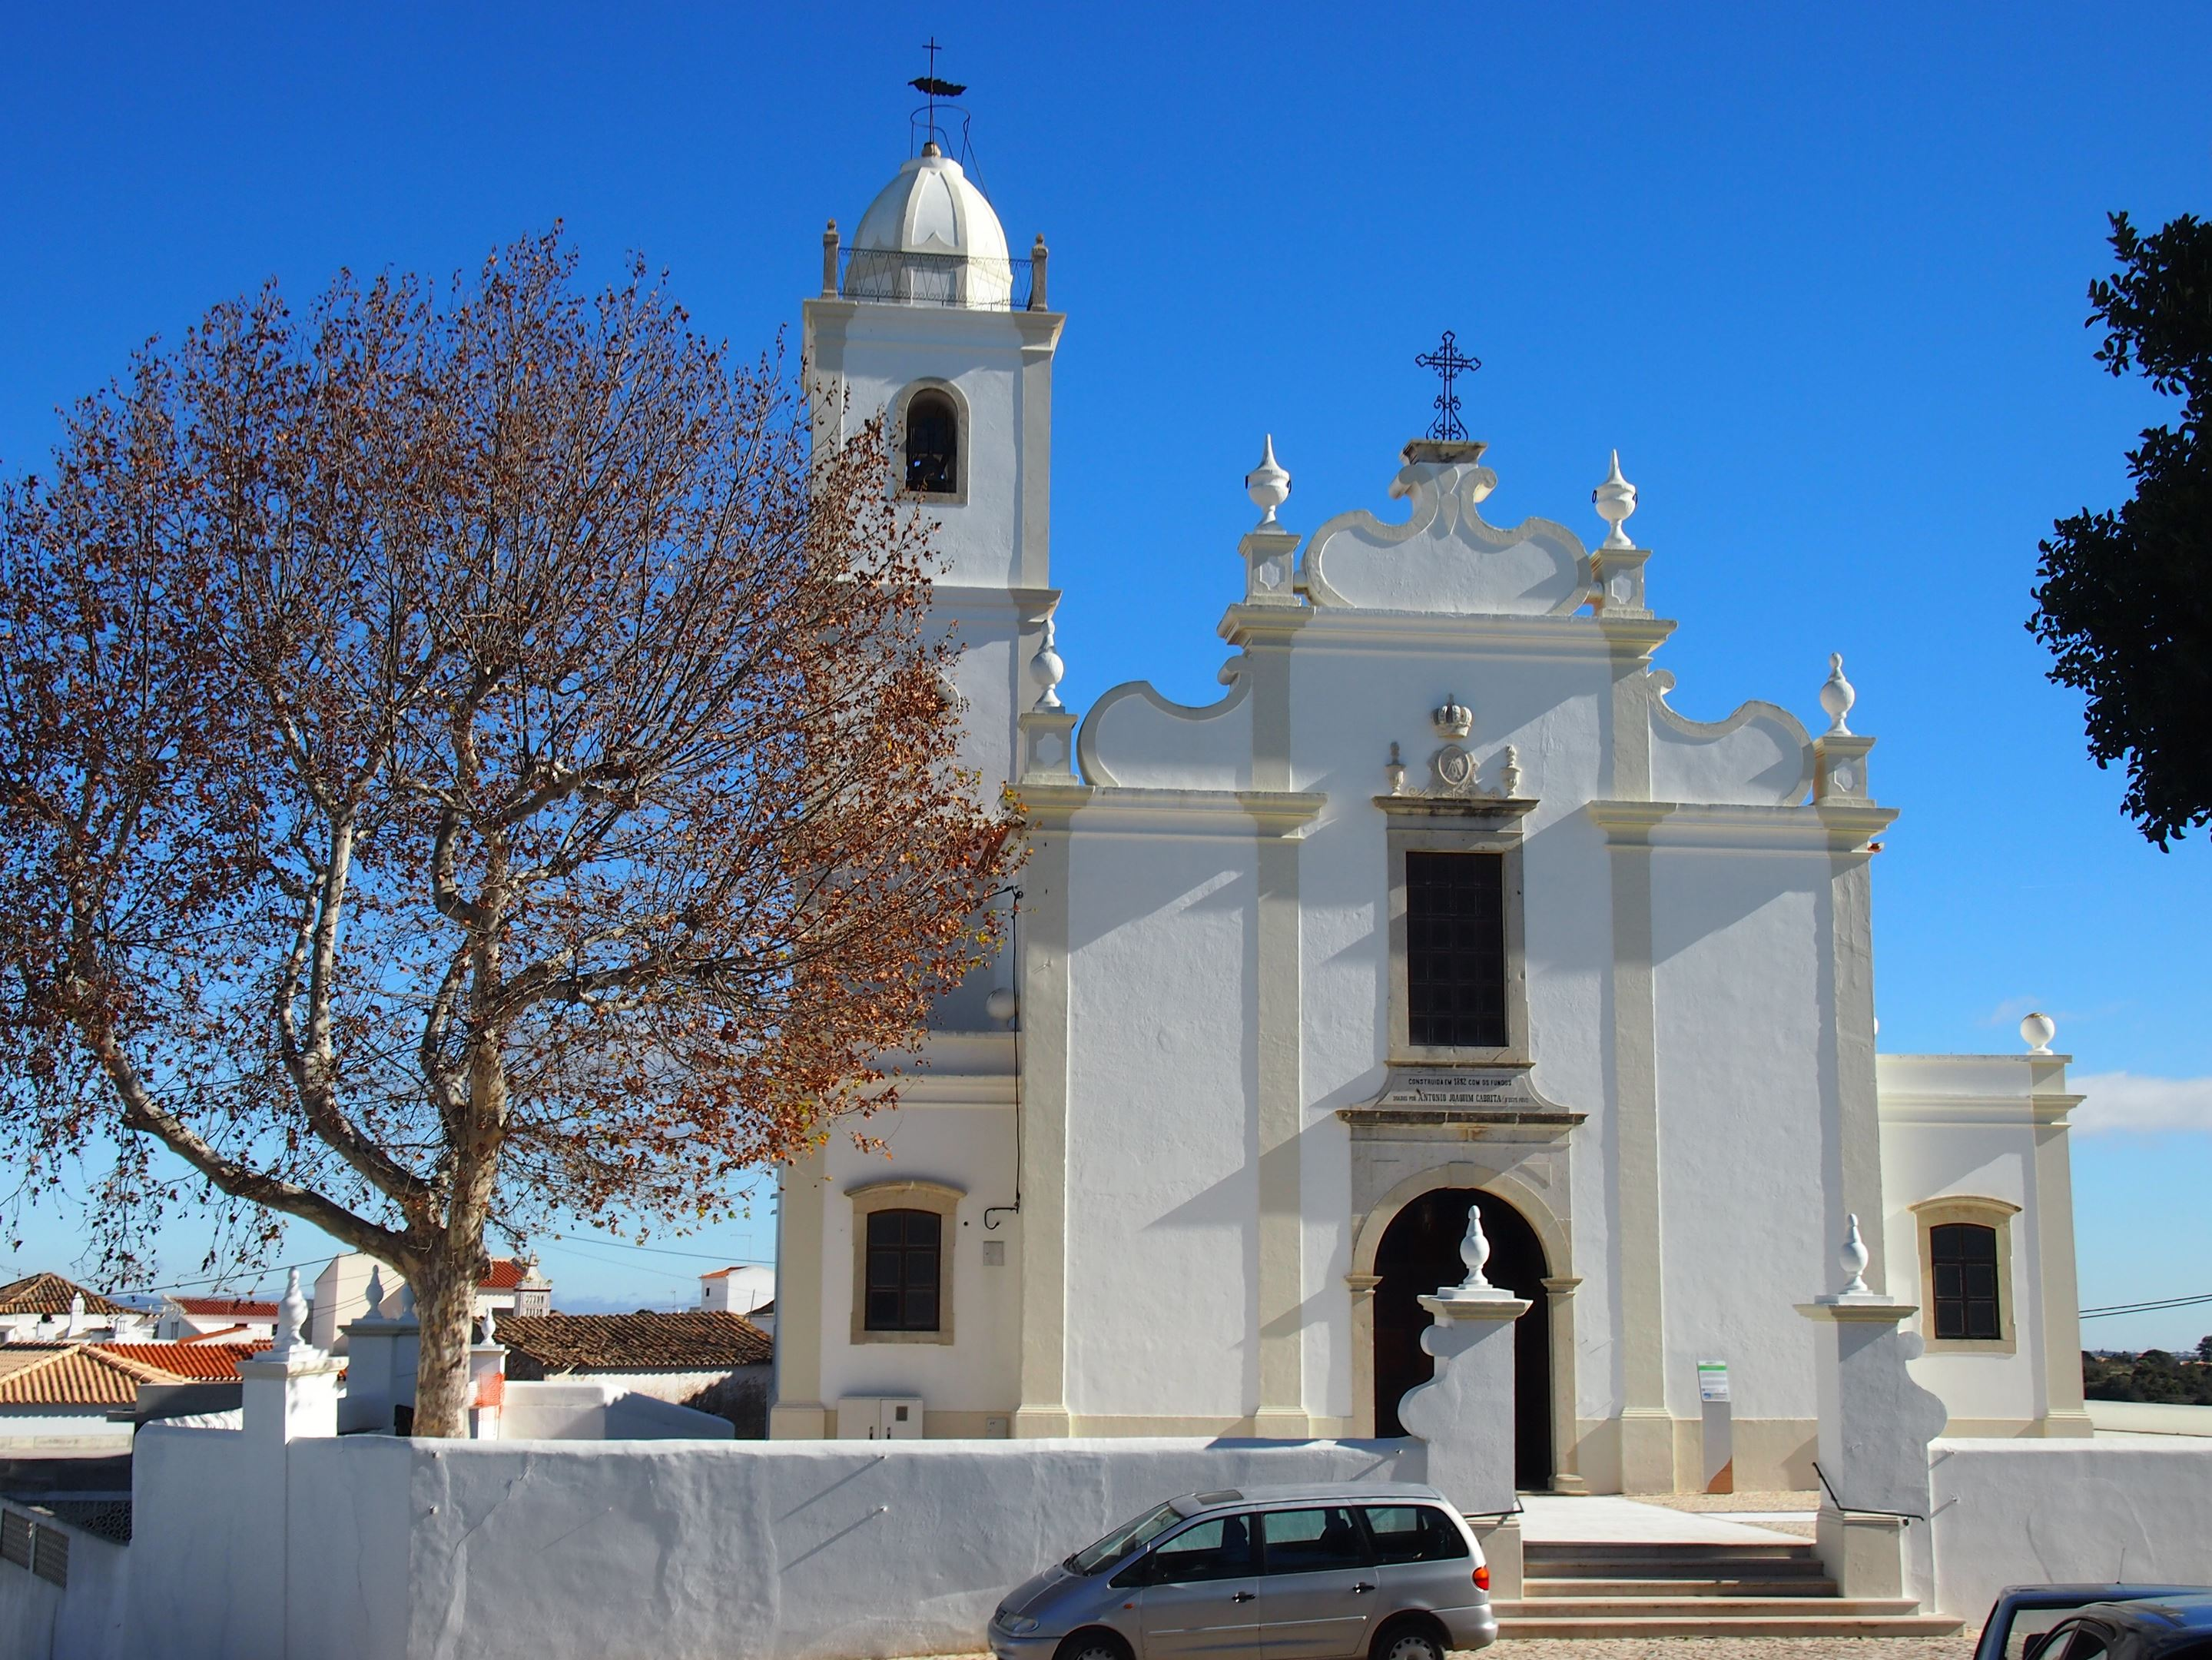 Igreja Matriz (the Mother Church) at Porches